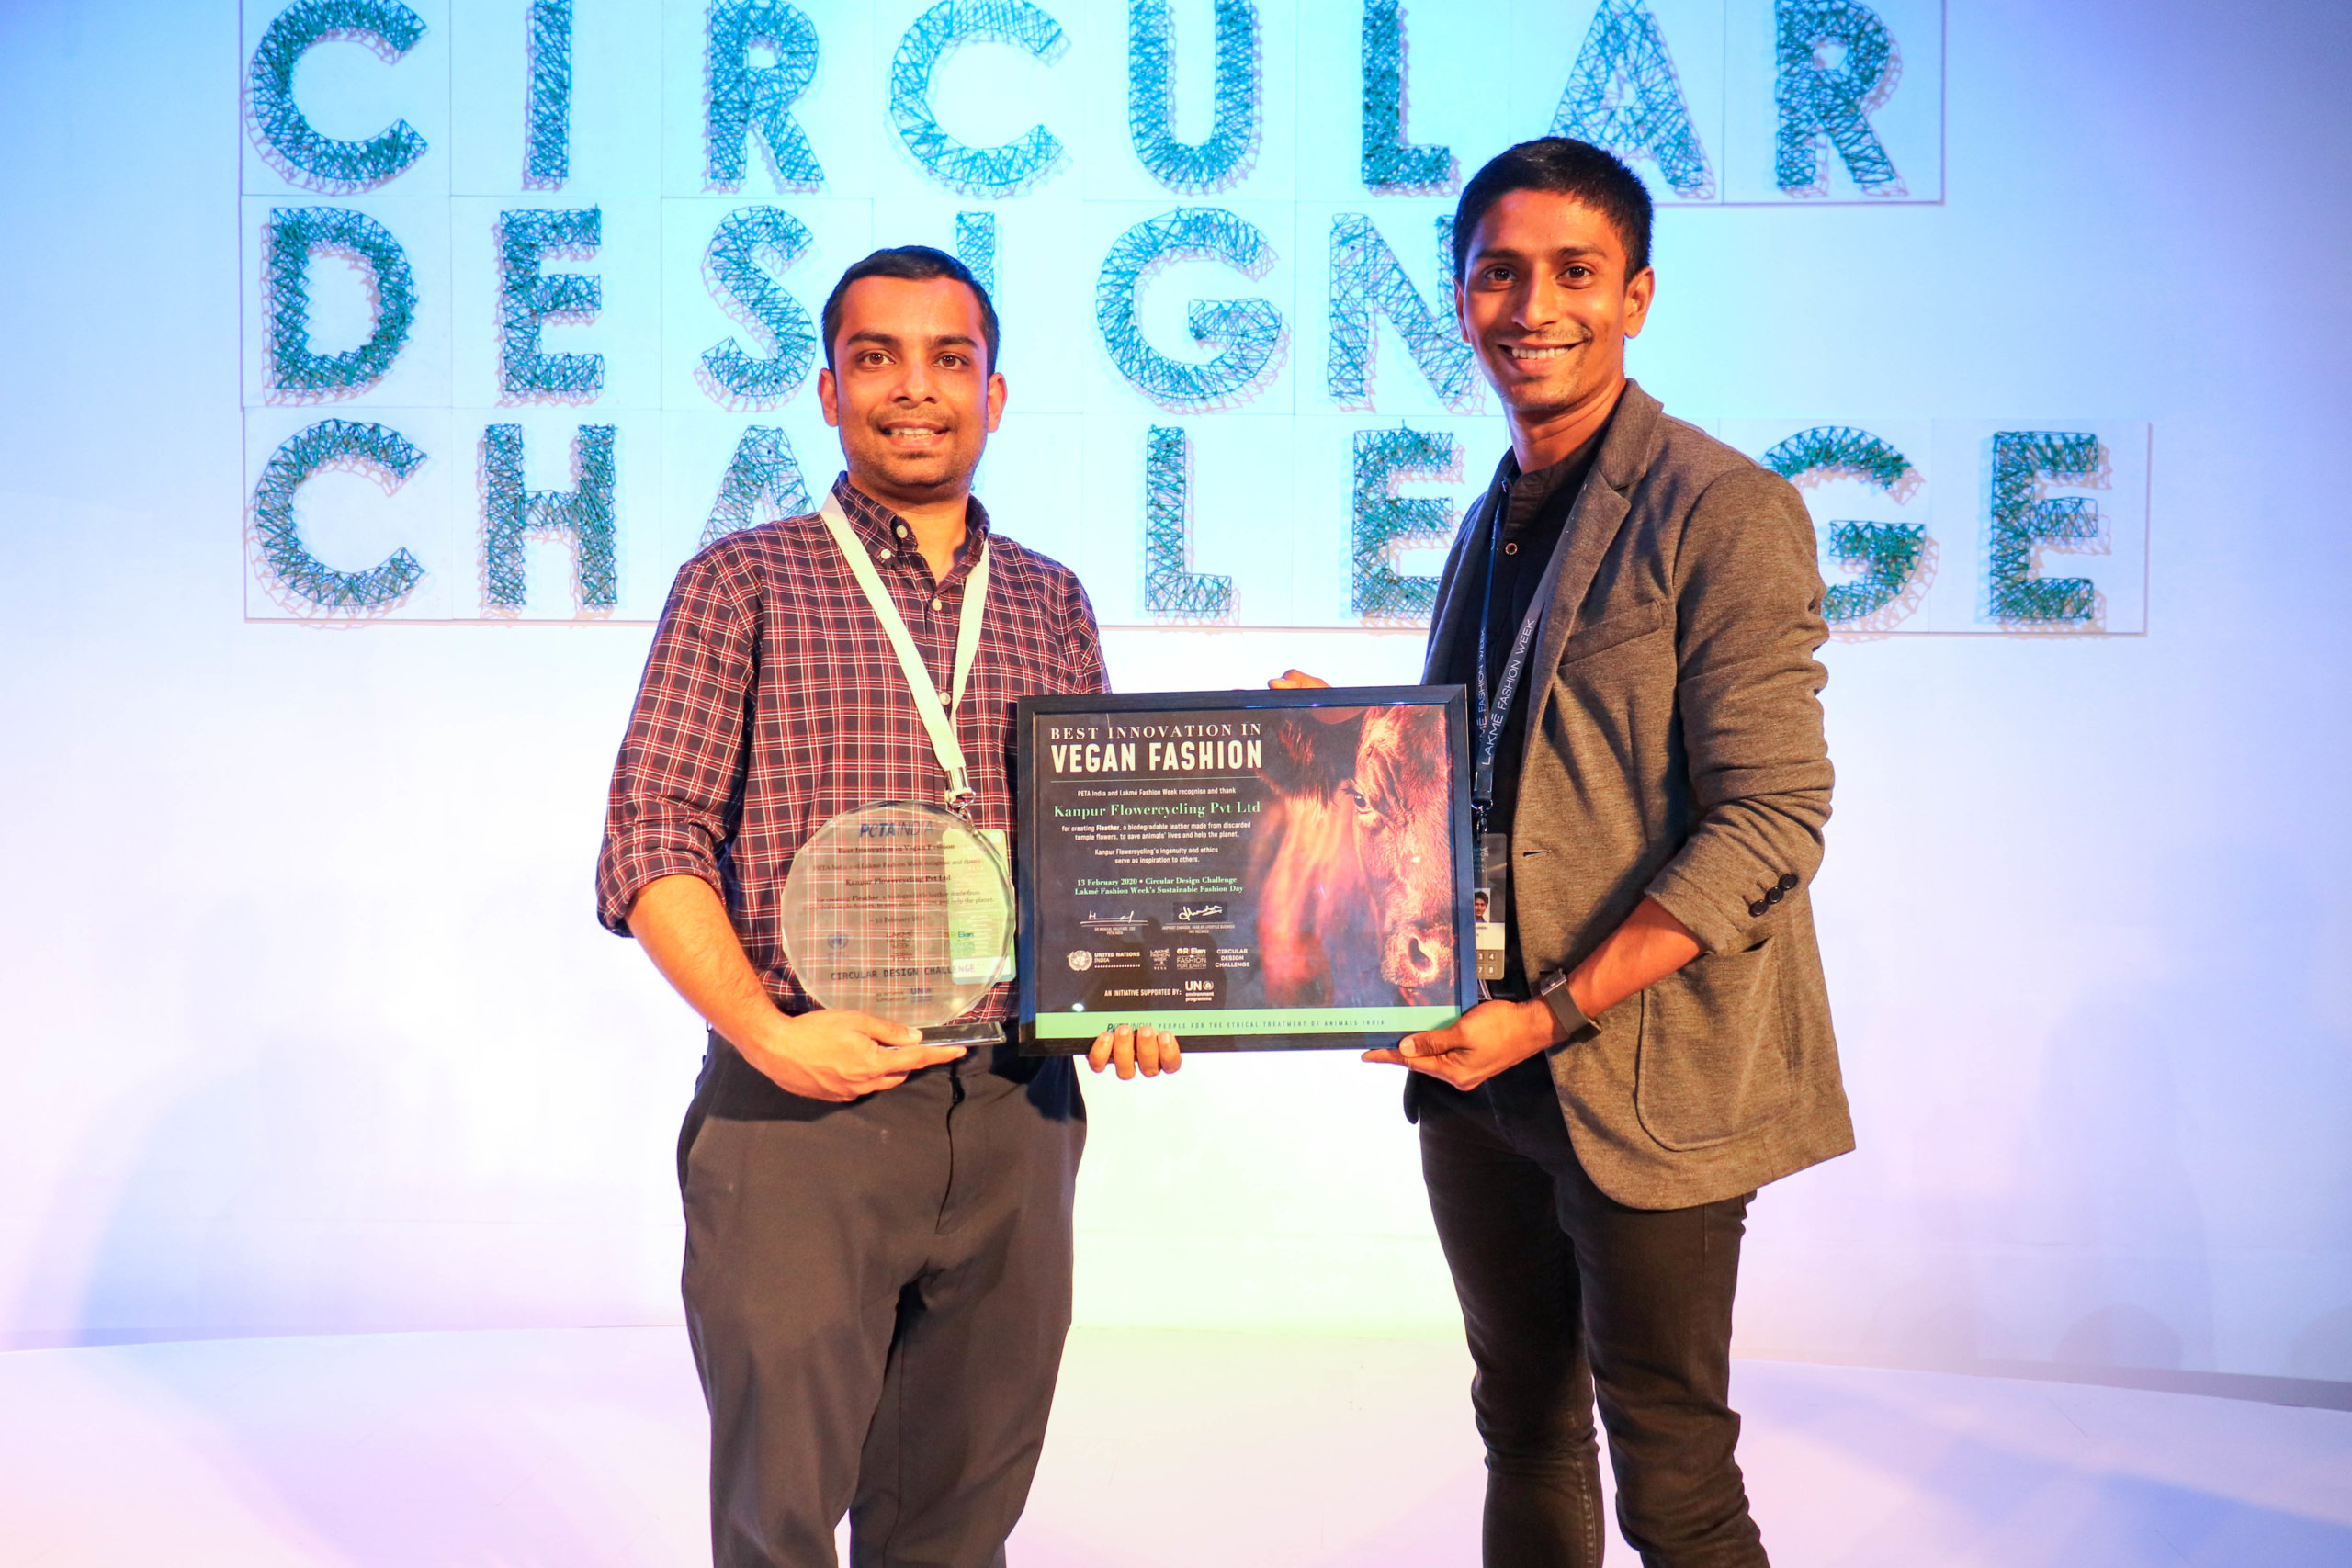 Ankit Agrawal (Left) receiving award from Sachin Bangera, Director of Public Relations and Celebrity at PETA India